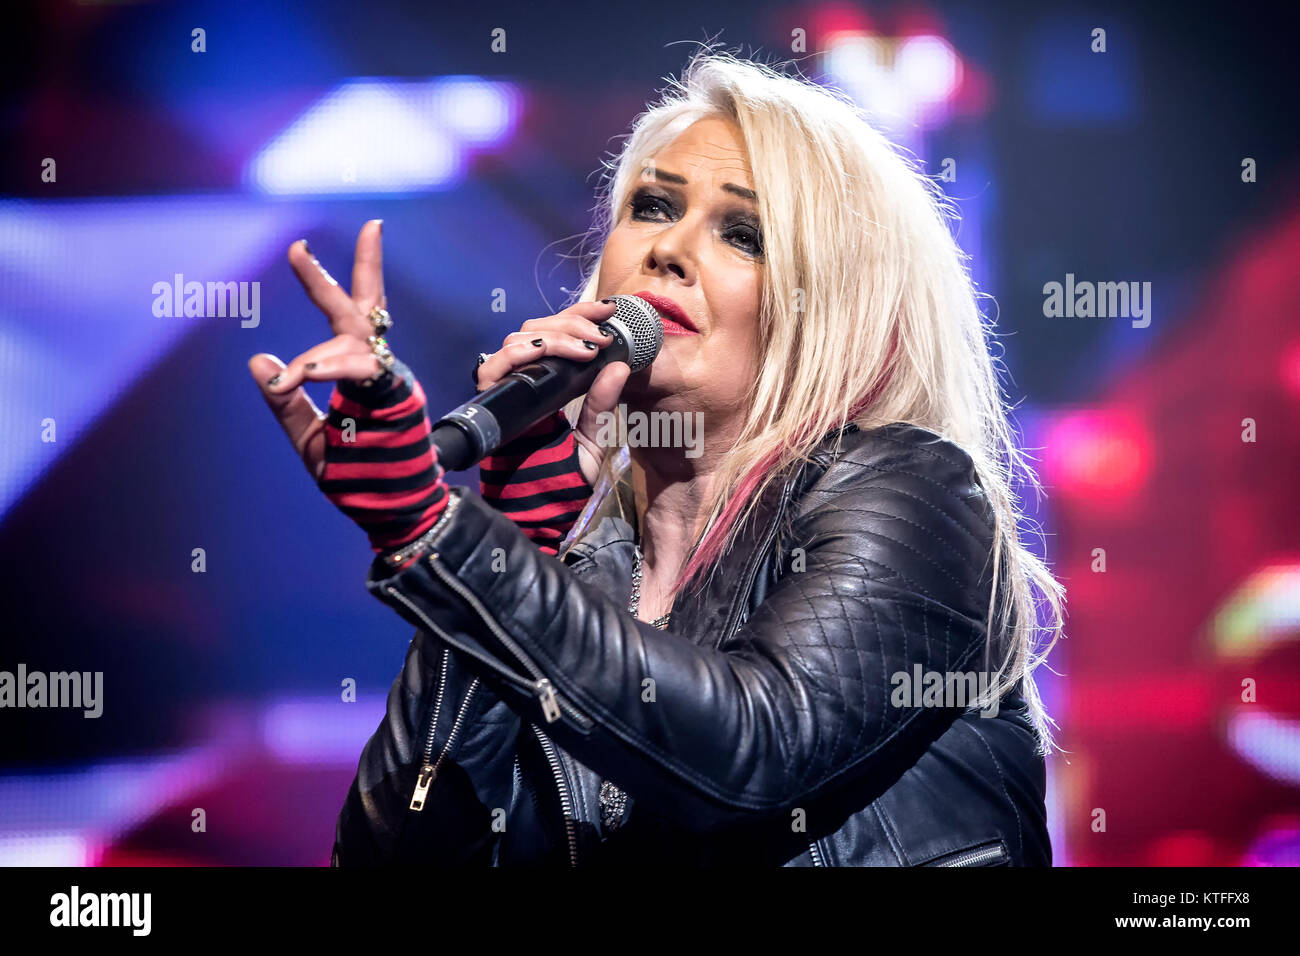 The English singer, songwriter and musician Kim Wilde performs live at the  show 'We